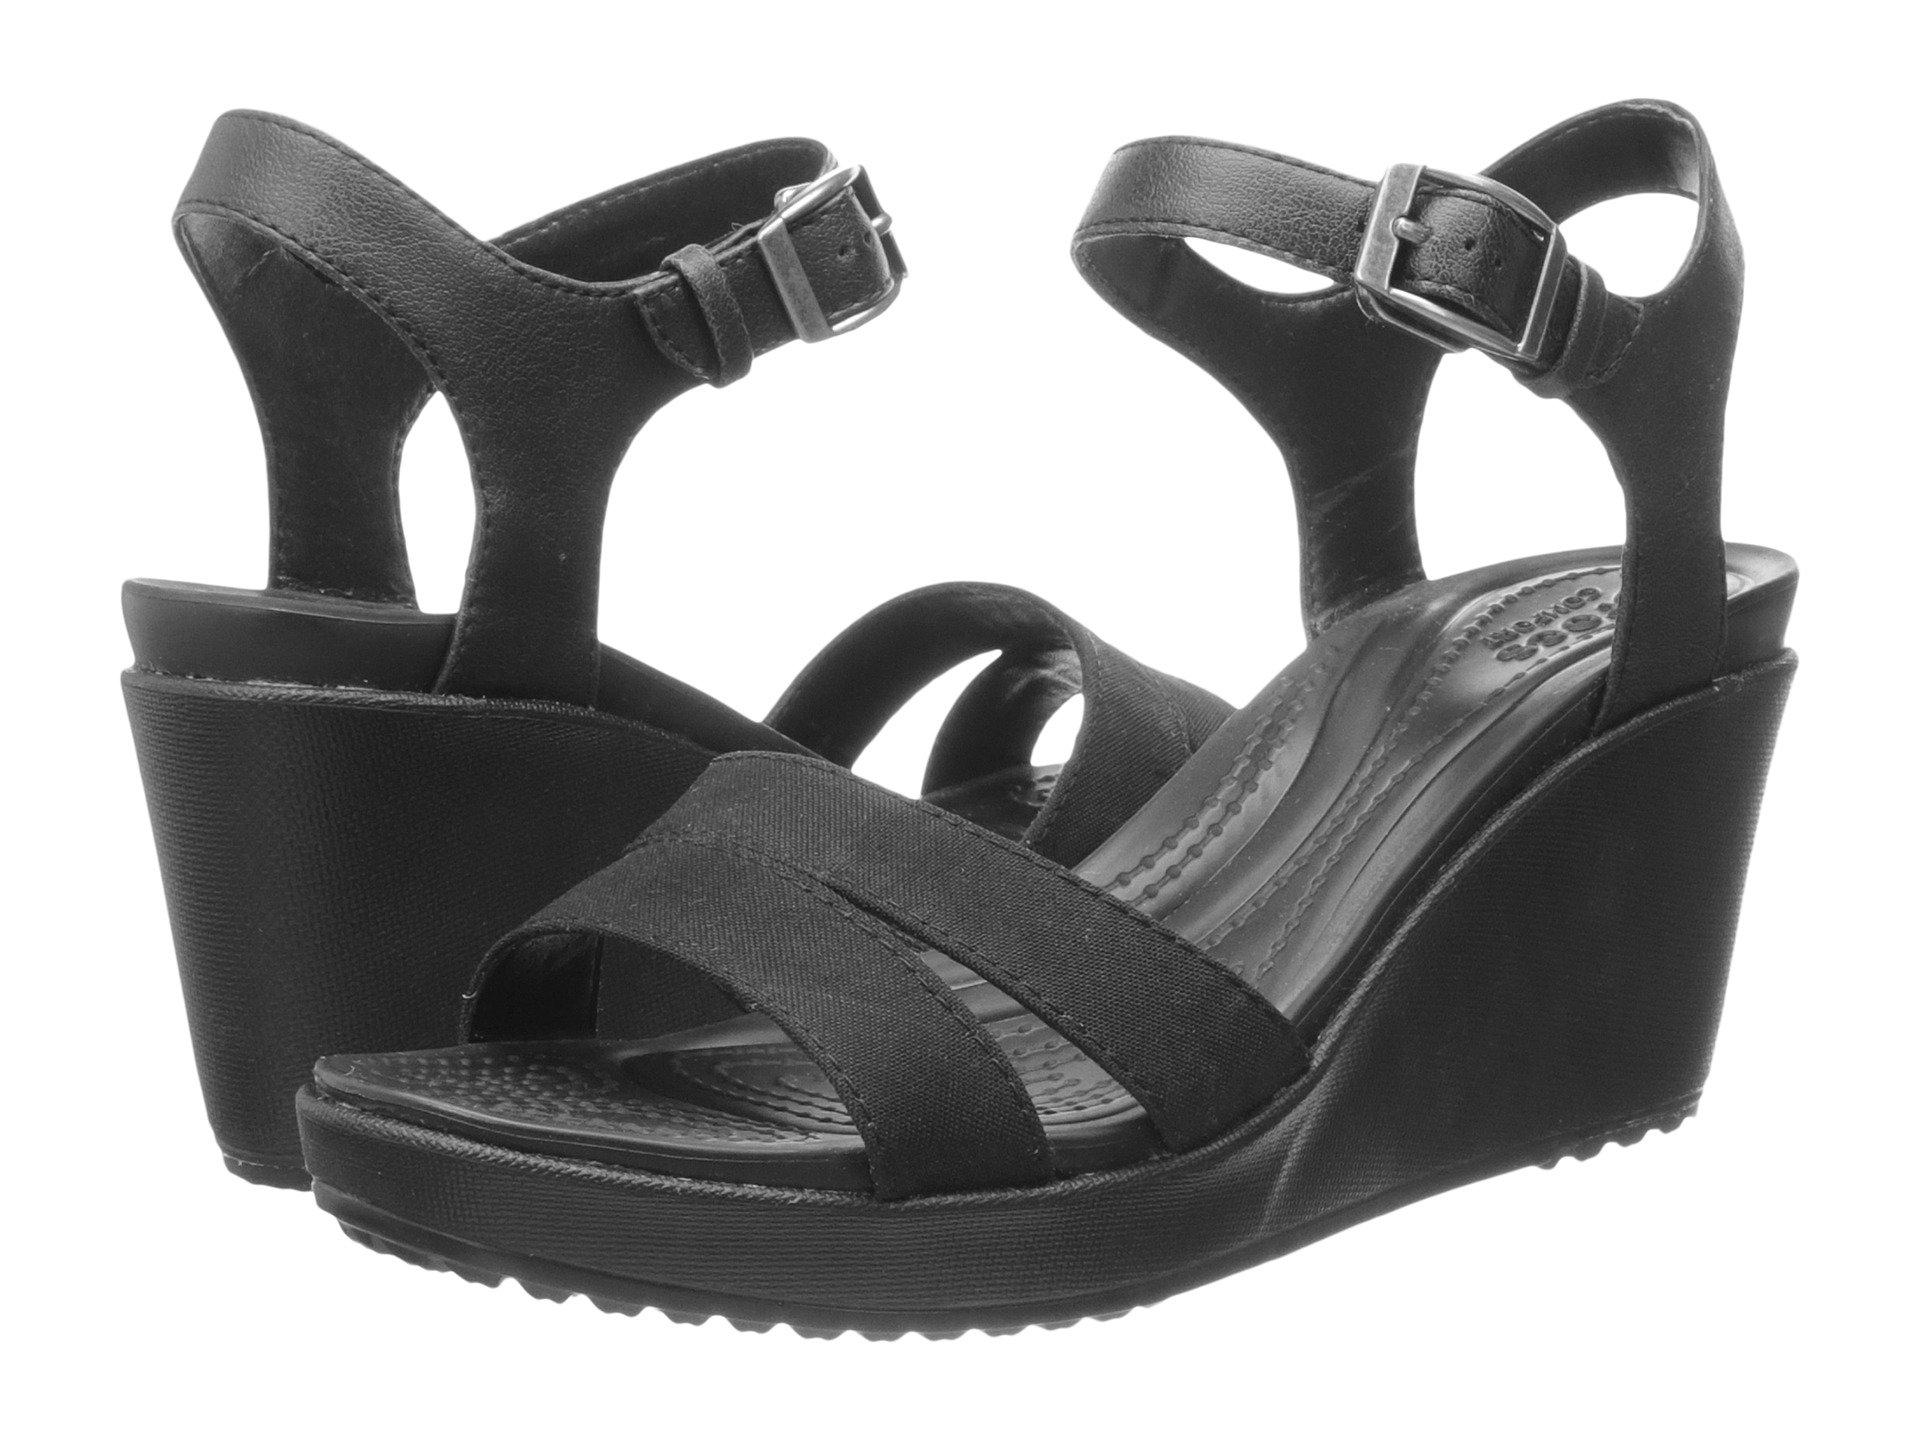 479c04a2082 Lyst - Crocs™ Leigh Ii Ankle Strap Wedge in Black